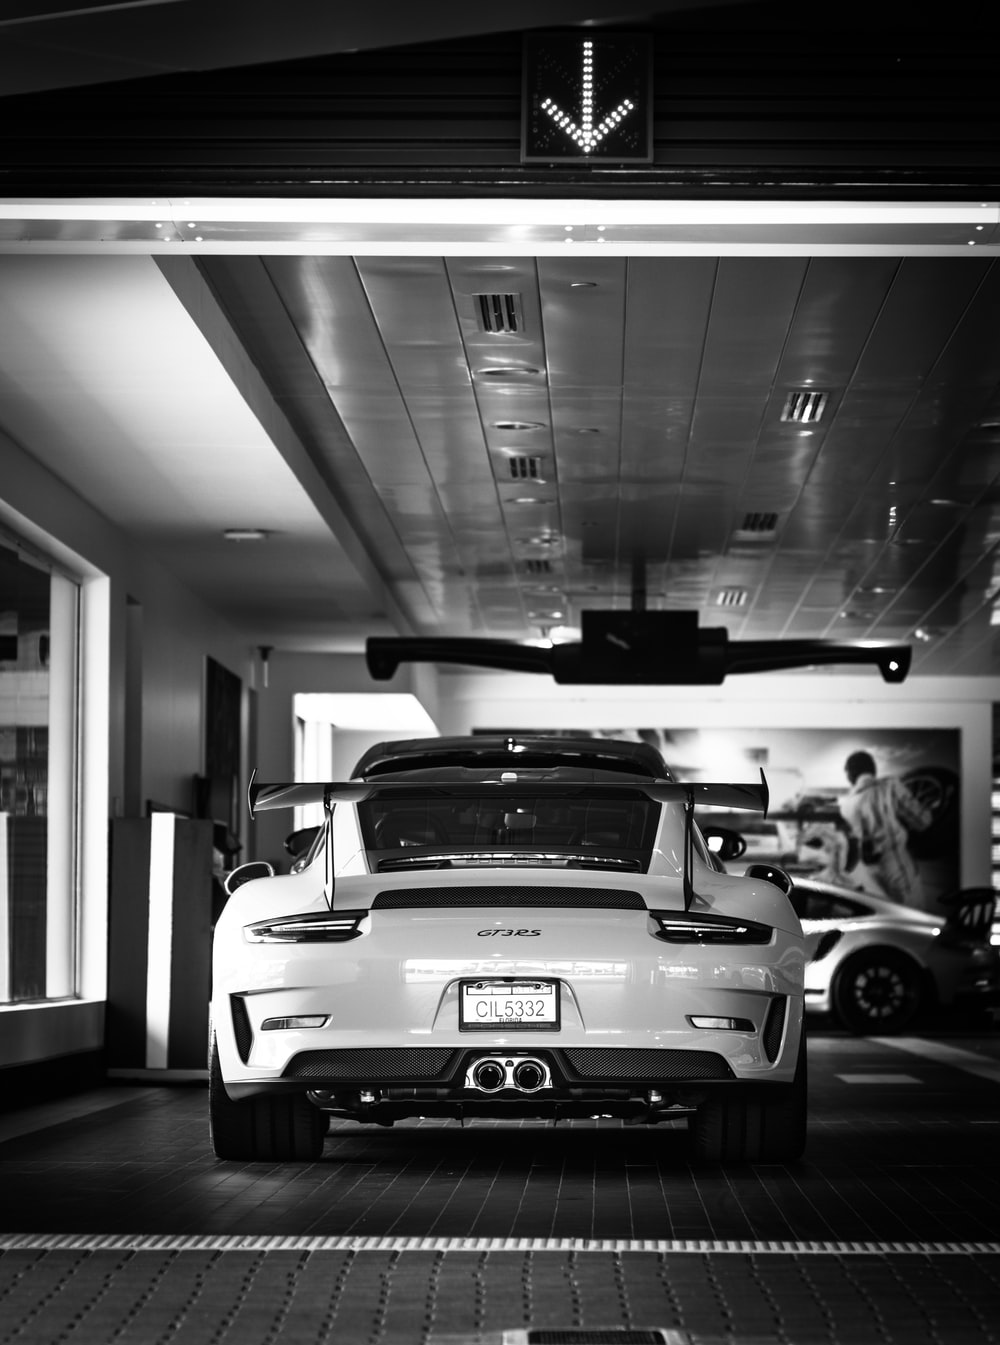 grayscale photo of sports car parked in parking lot